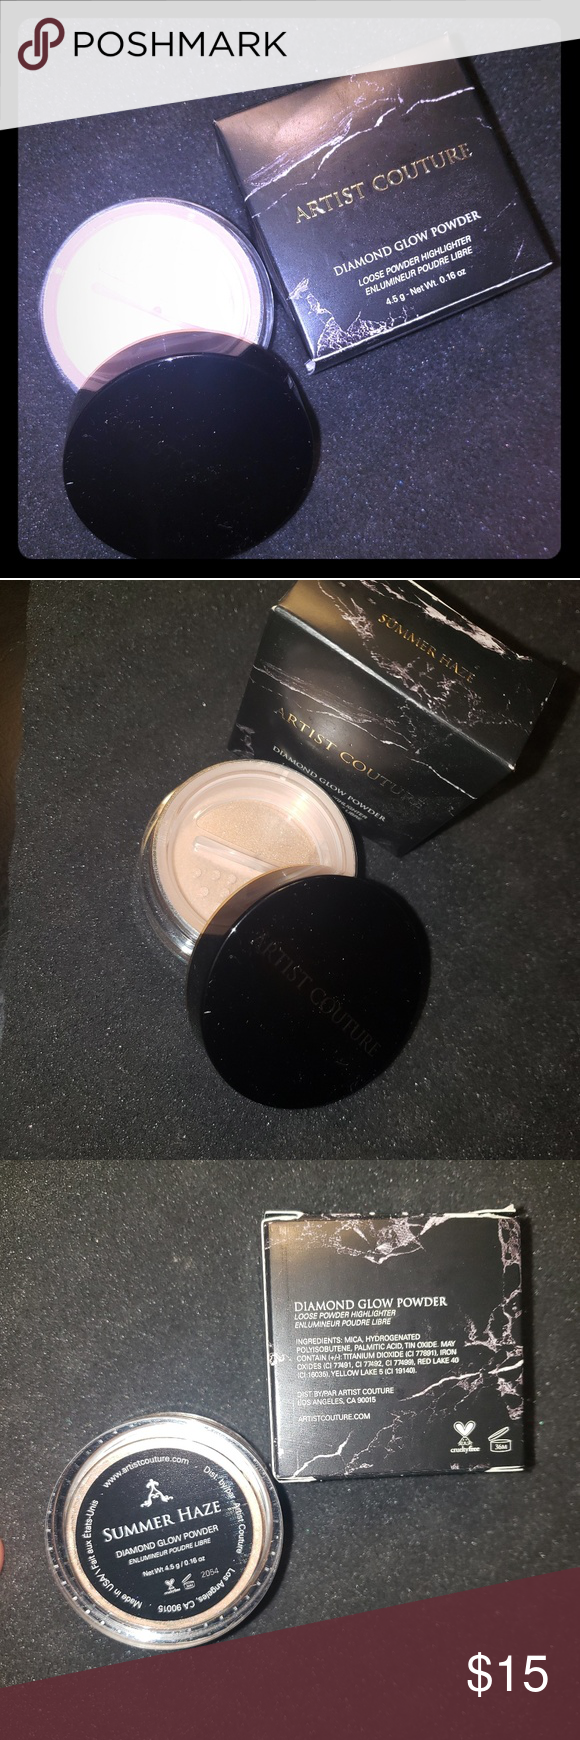 Artist Couture Diamond Glow Powder A shimmering loose